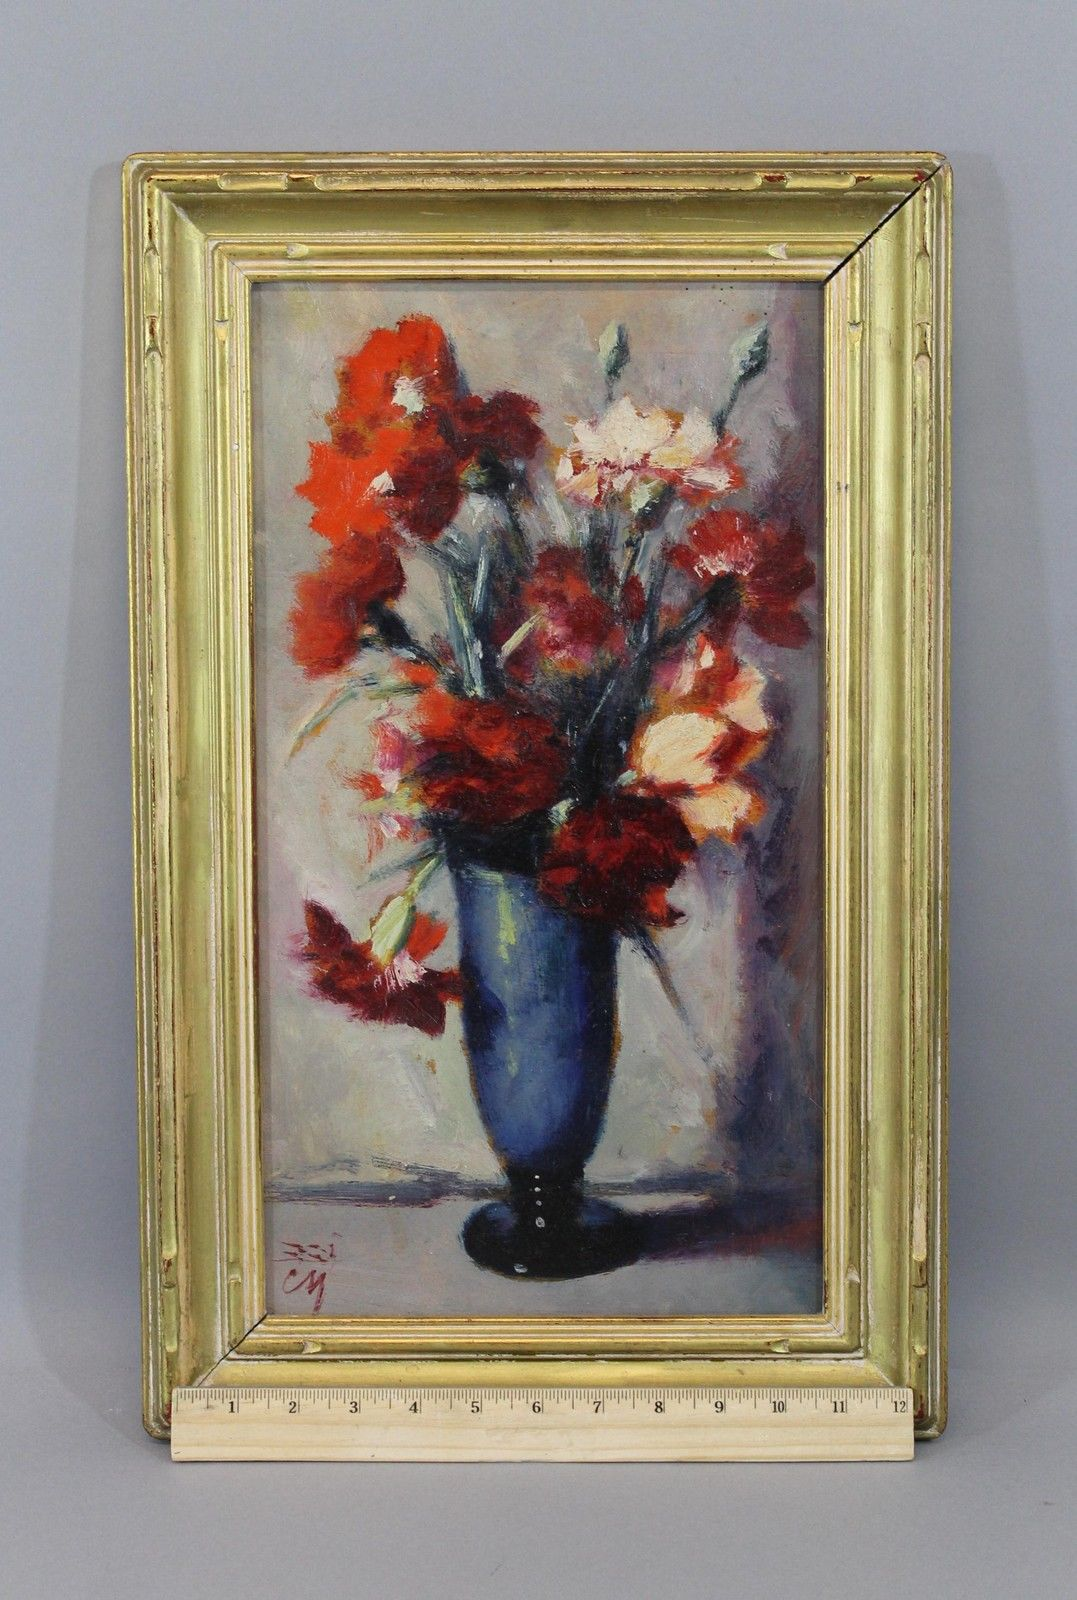 Prefer to roll the dice at auction? Here's a still life that's at $12.50 with one day left! Great original frame.